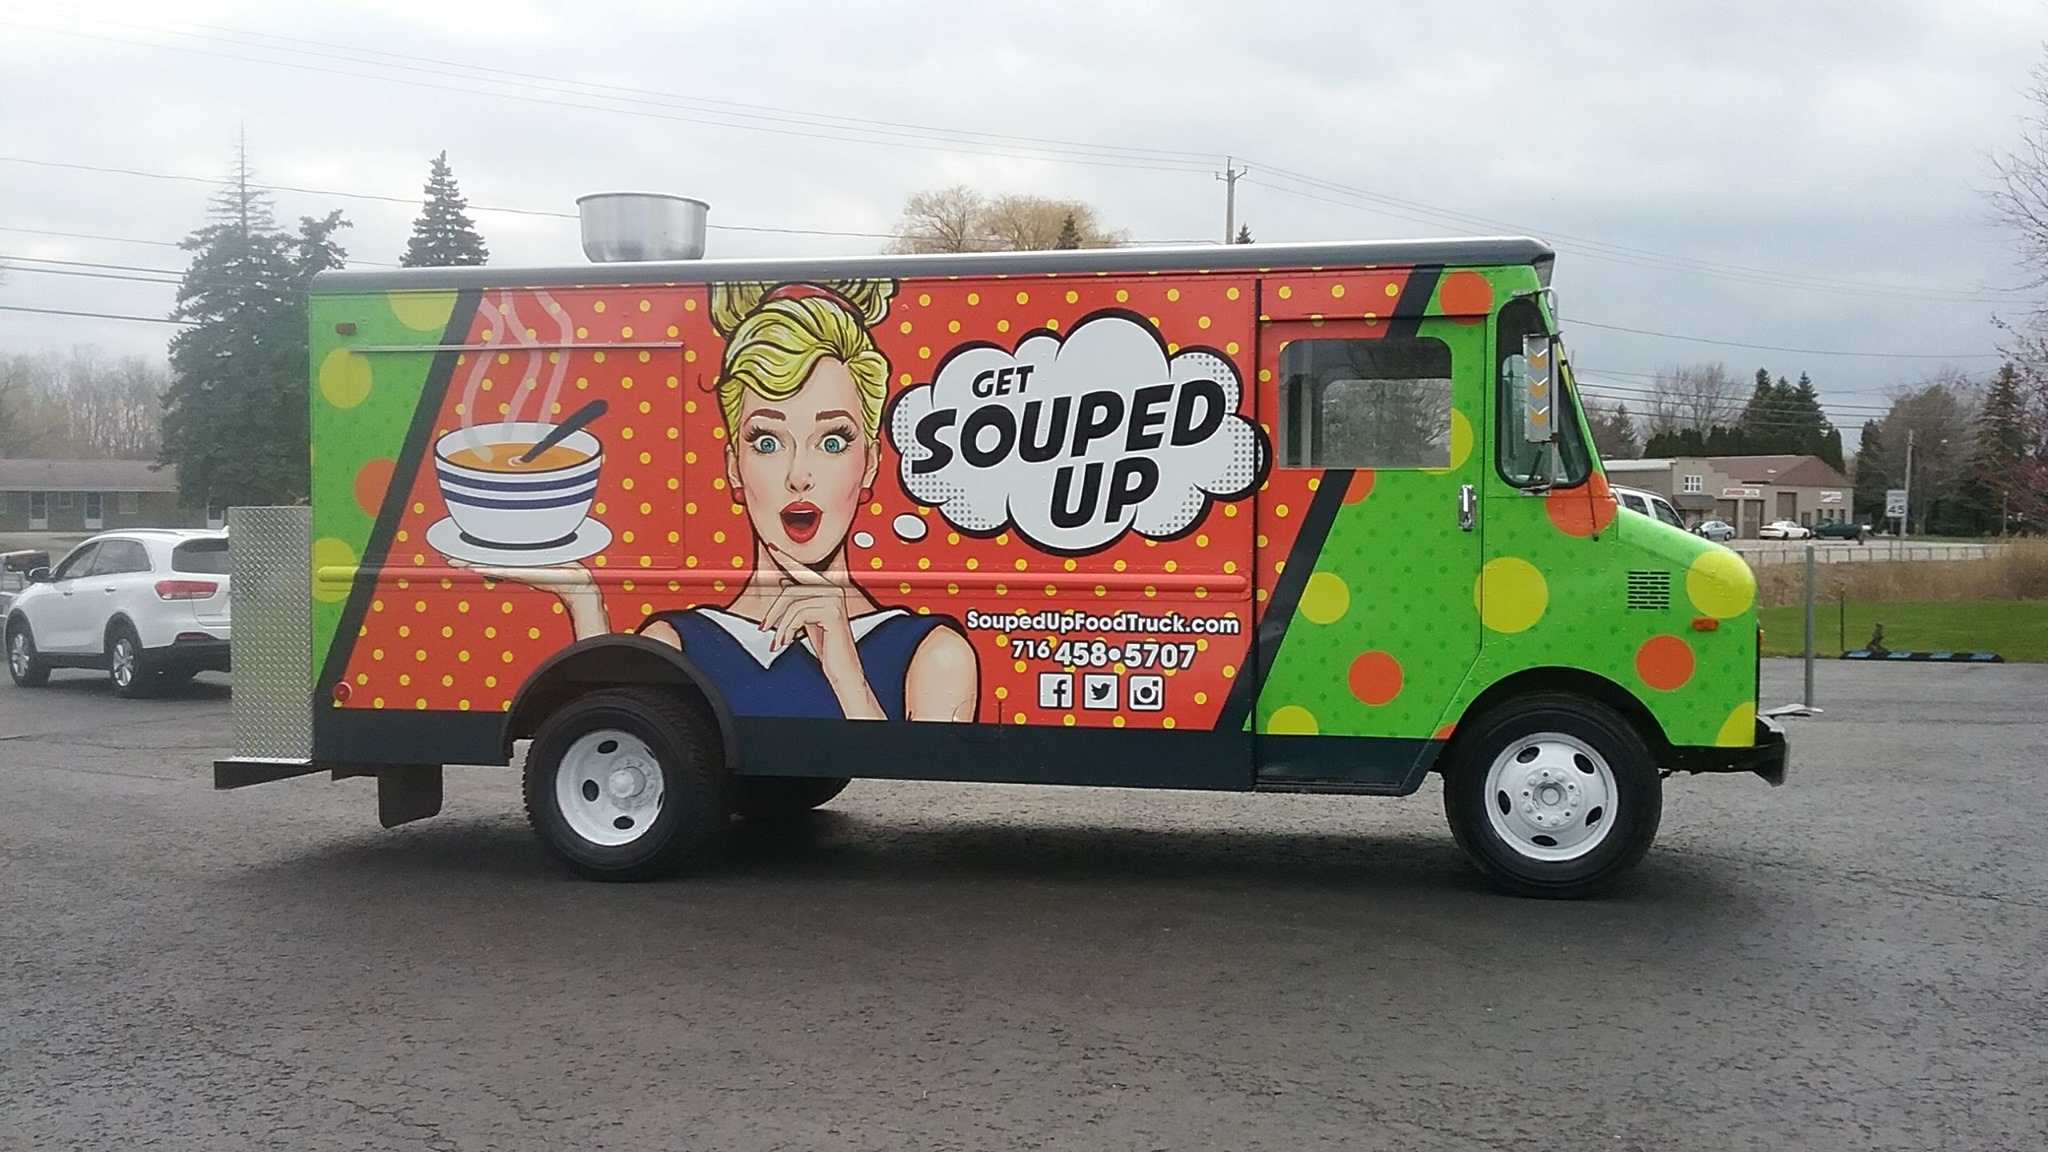 Souped Up Food Truck